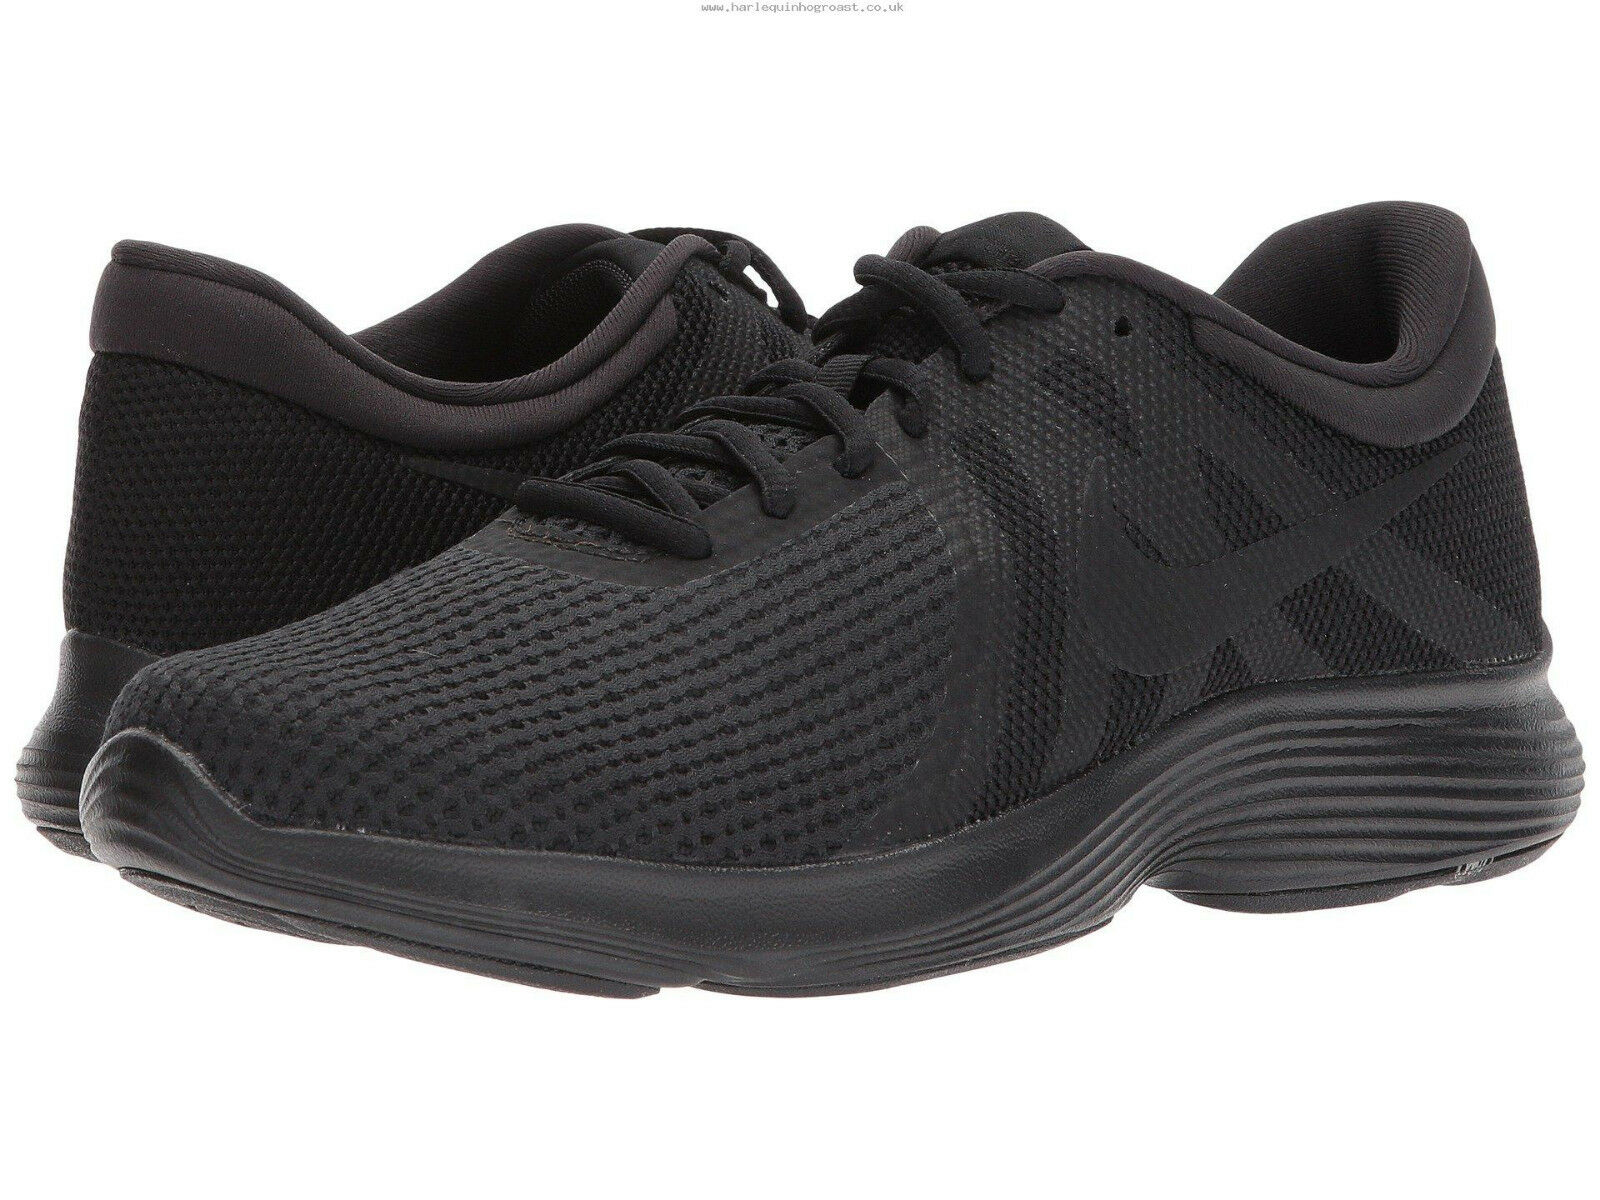 Nike Hombre Revolution 4 Zapatos Trainers, Nike Revolution Running Zapatos 4   Negro Talla 614 319bd5